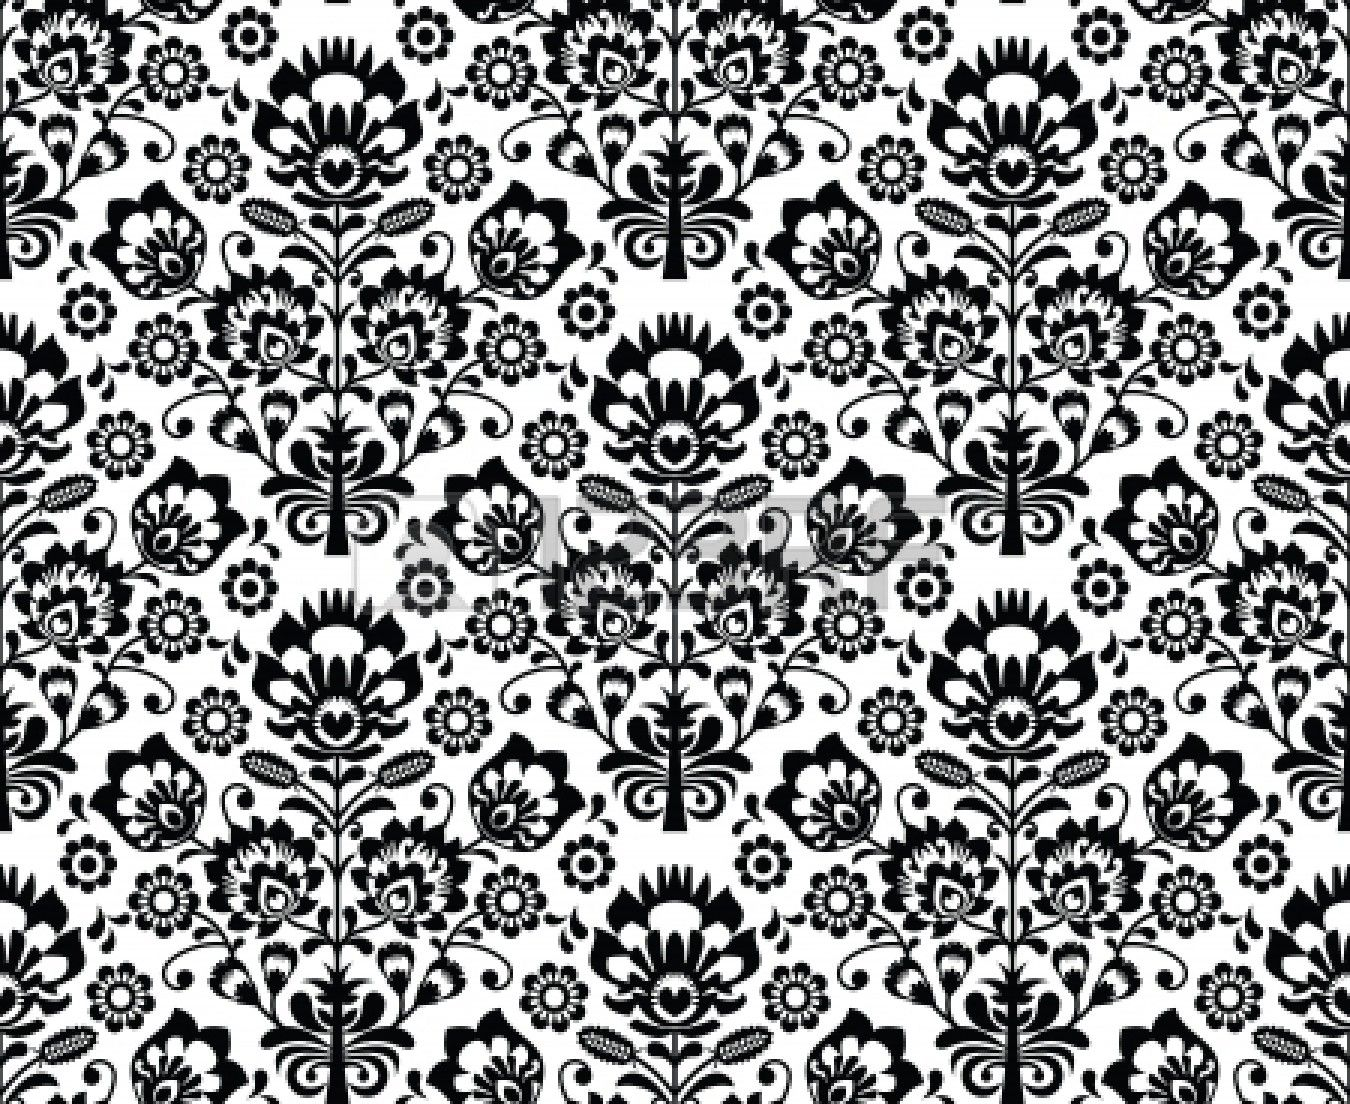 Appeling Free Square Black And White Background Wallpaper Wallpaper